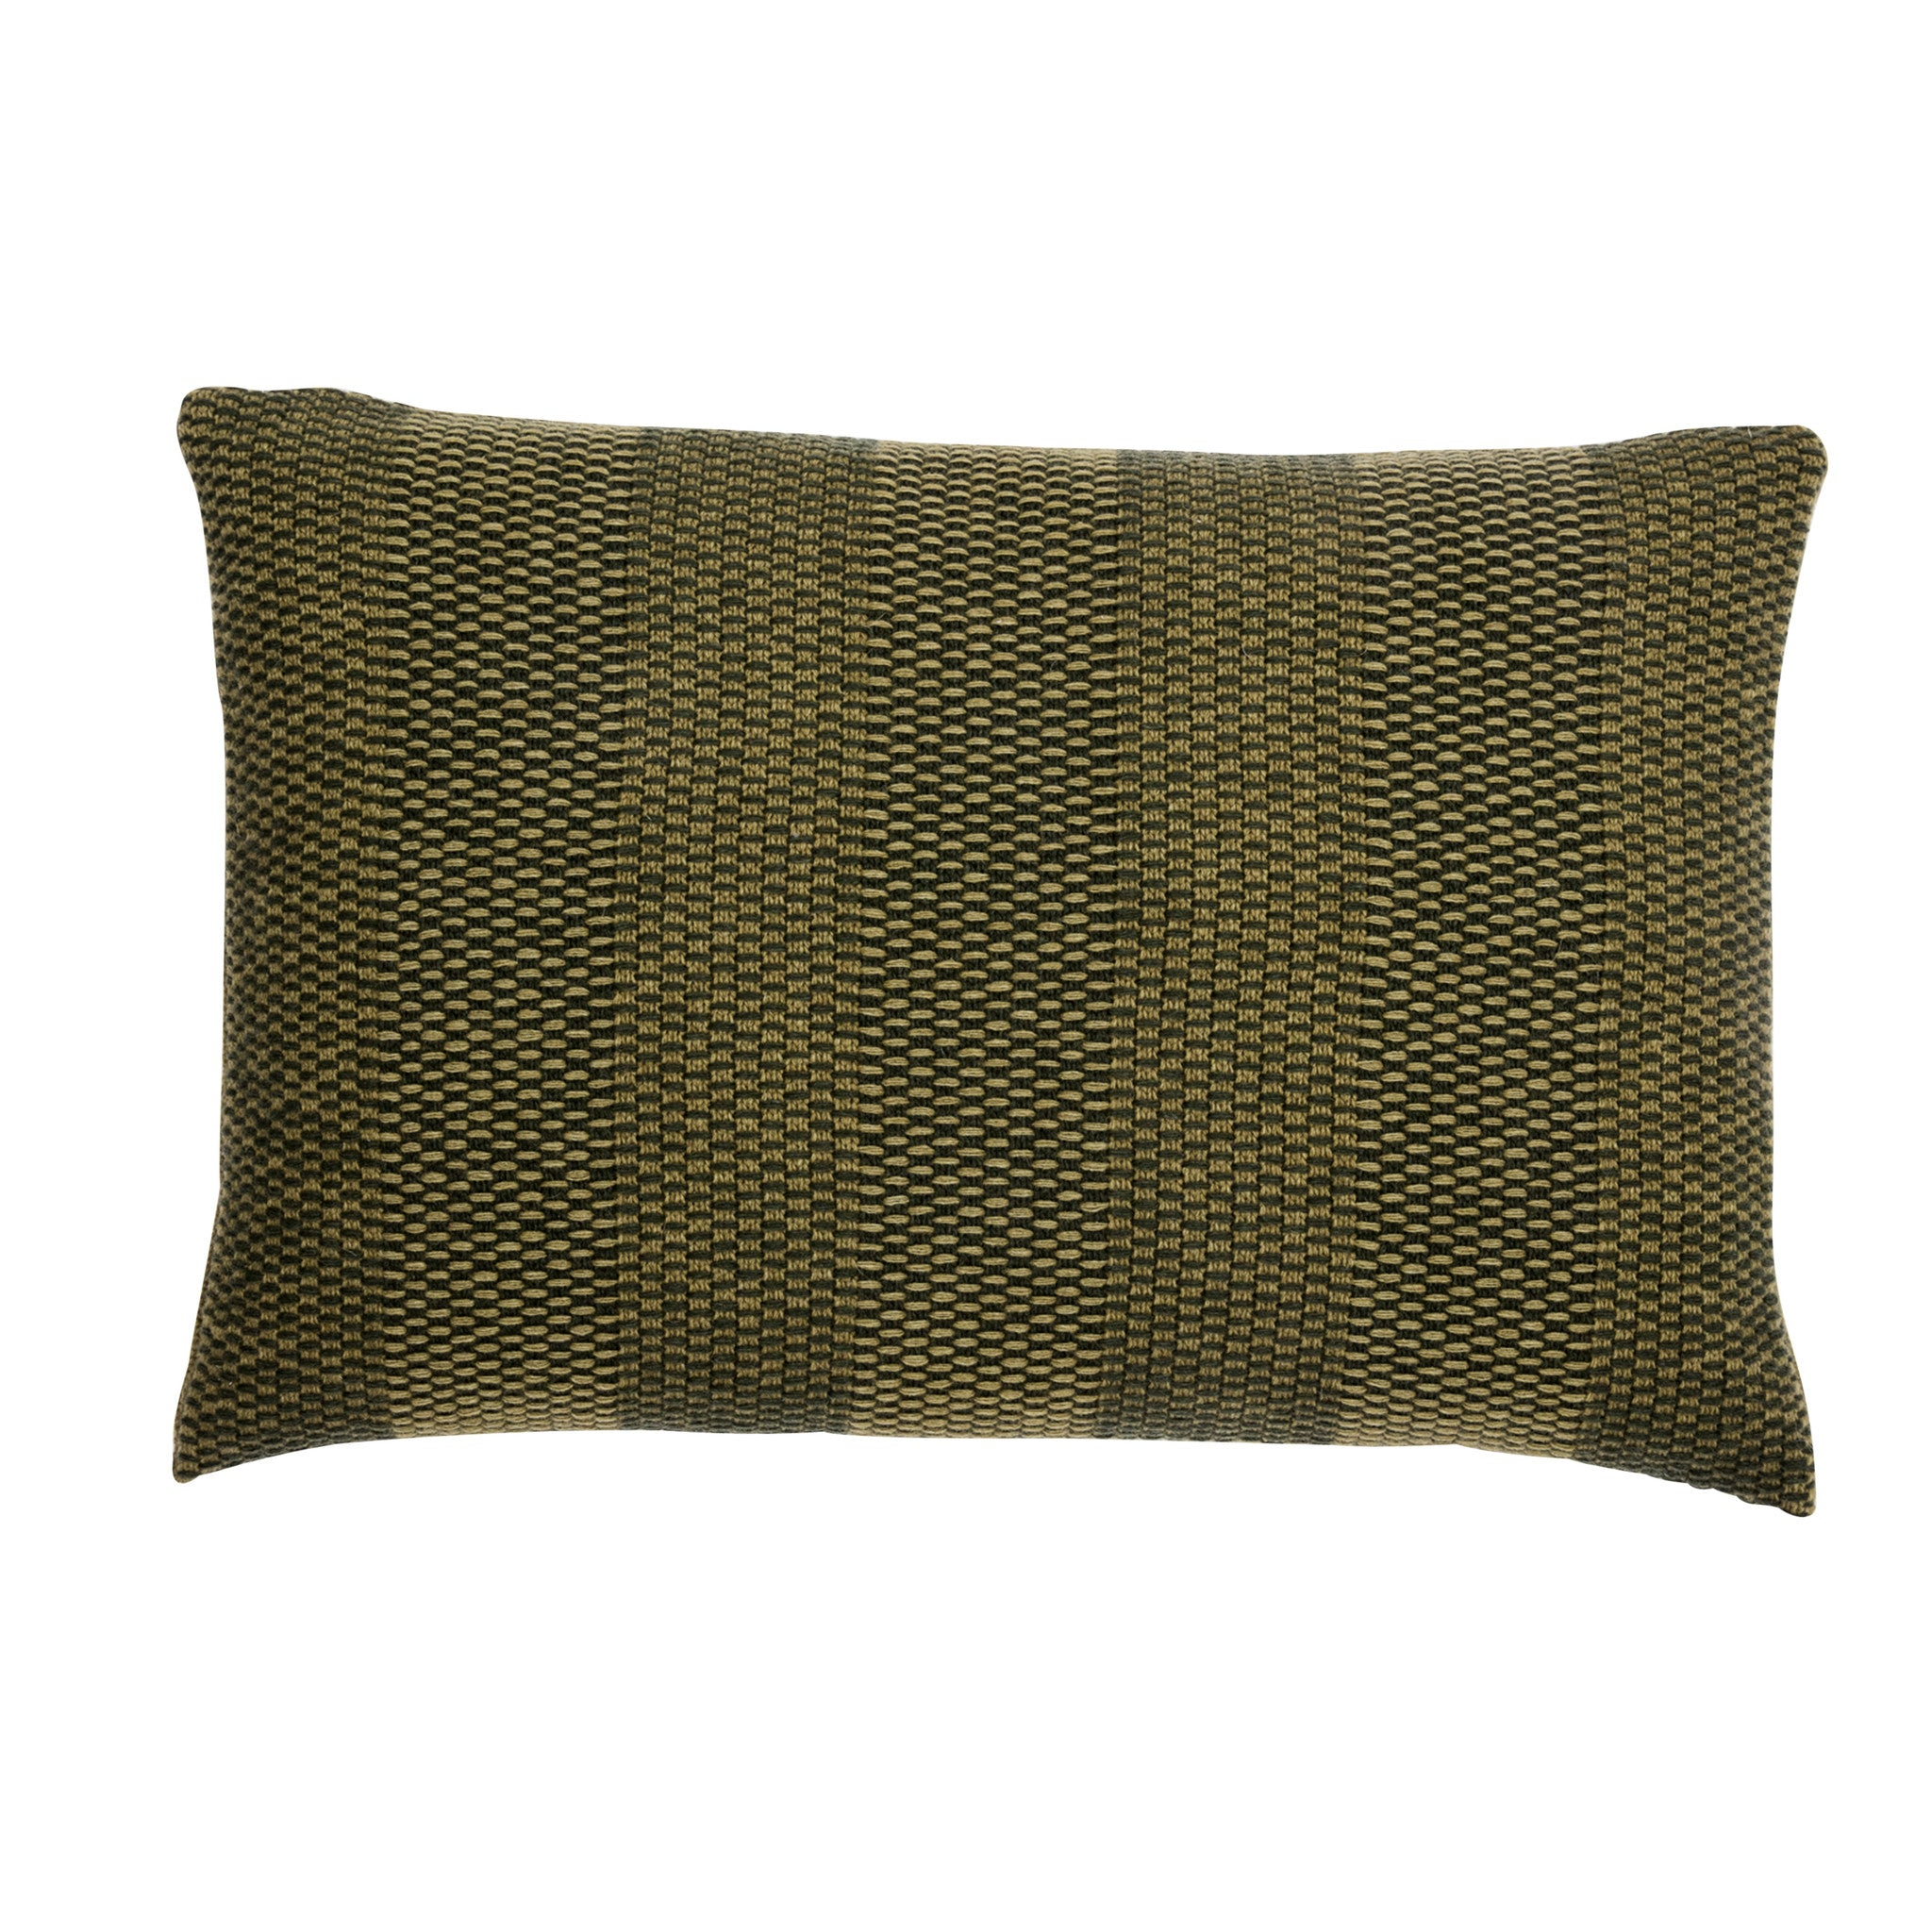 Weave Knit cushion, moss green